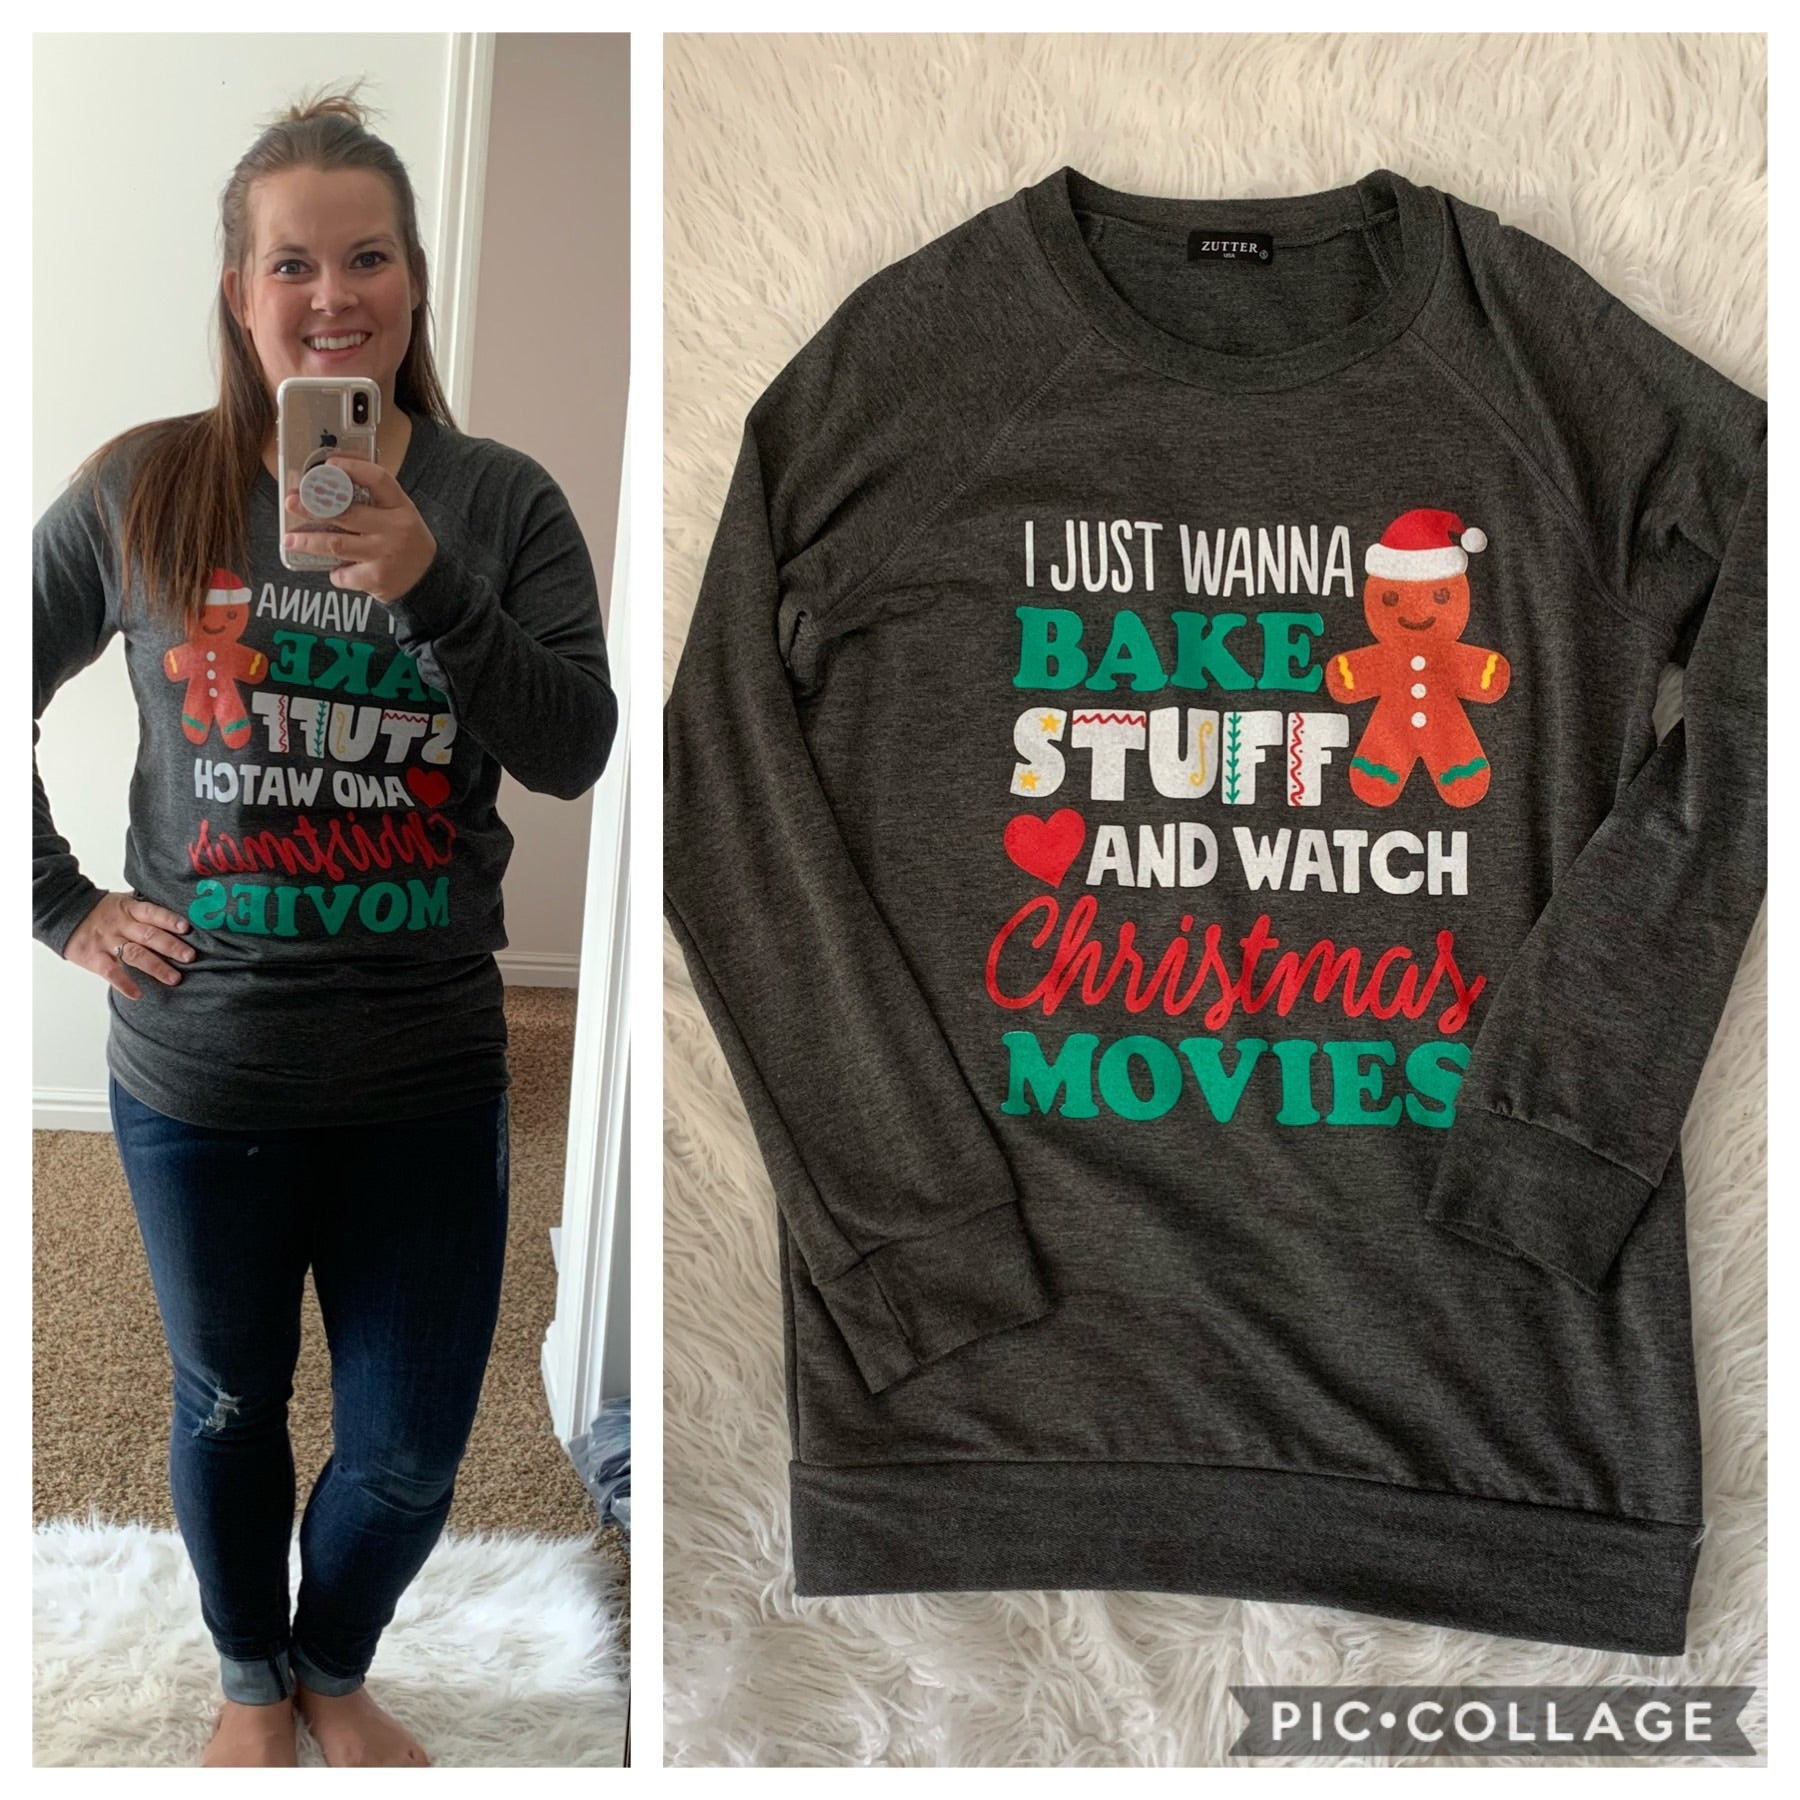 Bake stuff/Christmas movies sweater